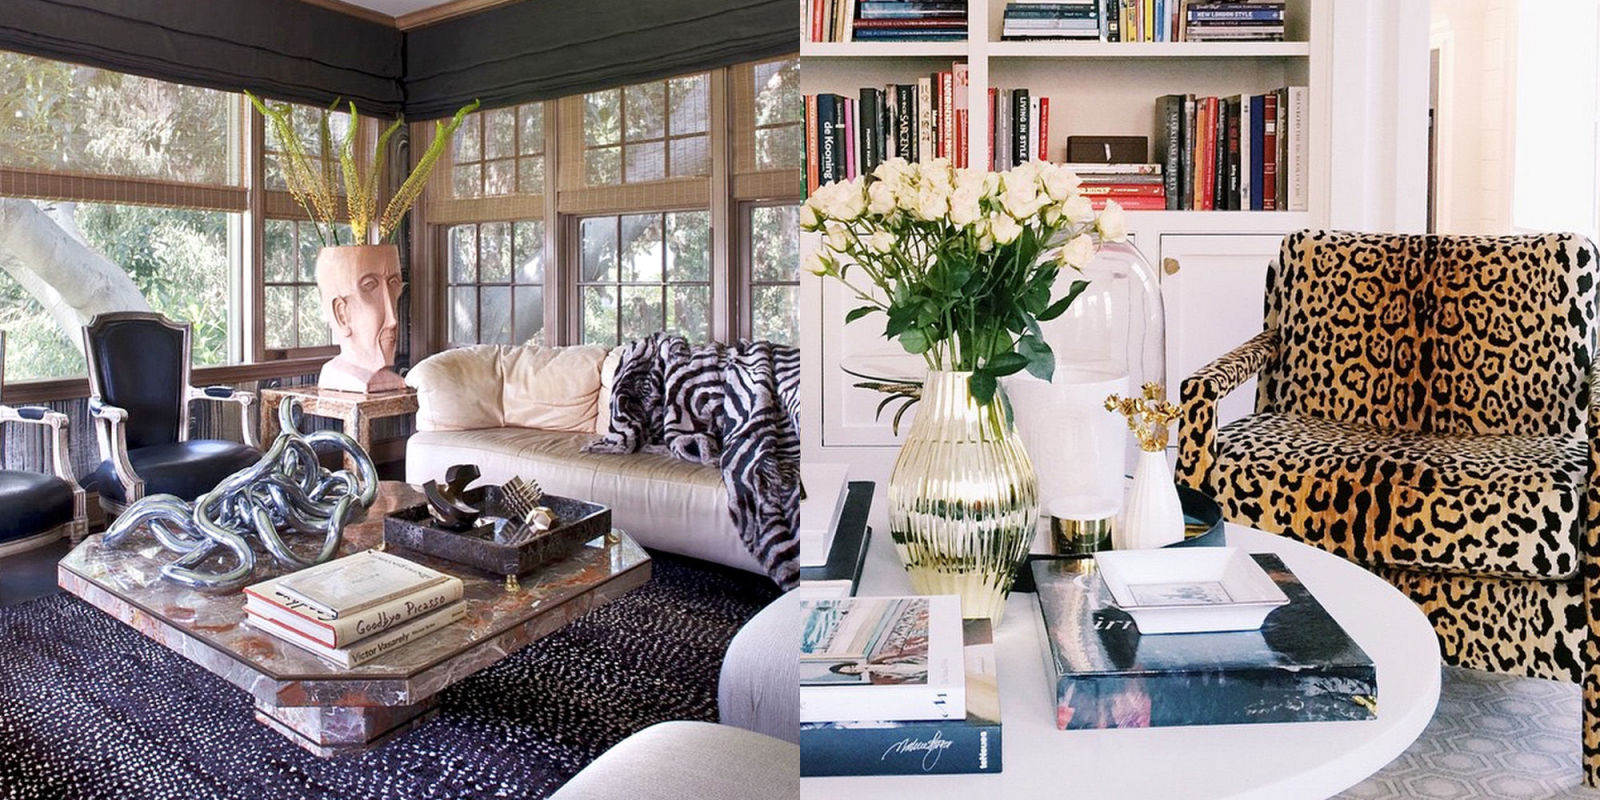 Chic Coffee Table Inspiration - How to Style Your Coffee Table on Coffee Table Inspiration  id=62476